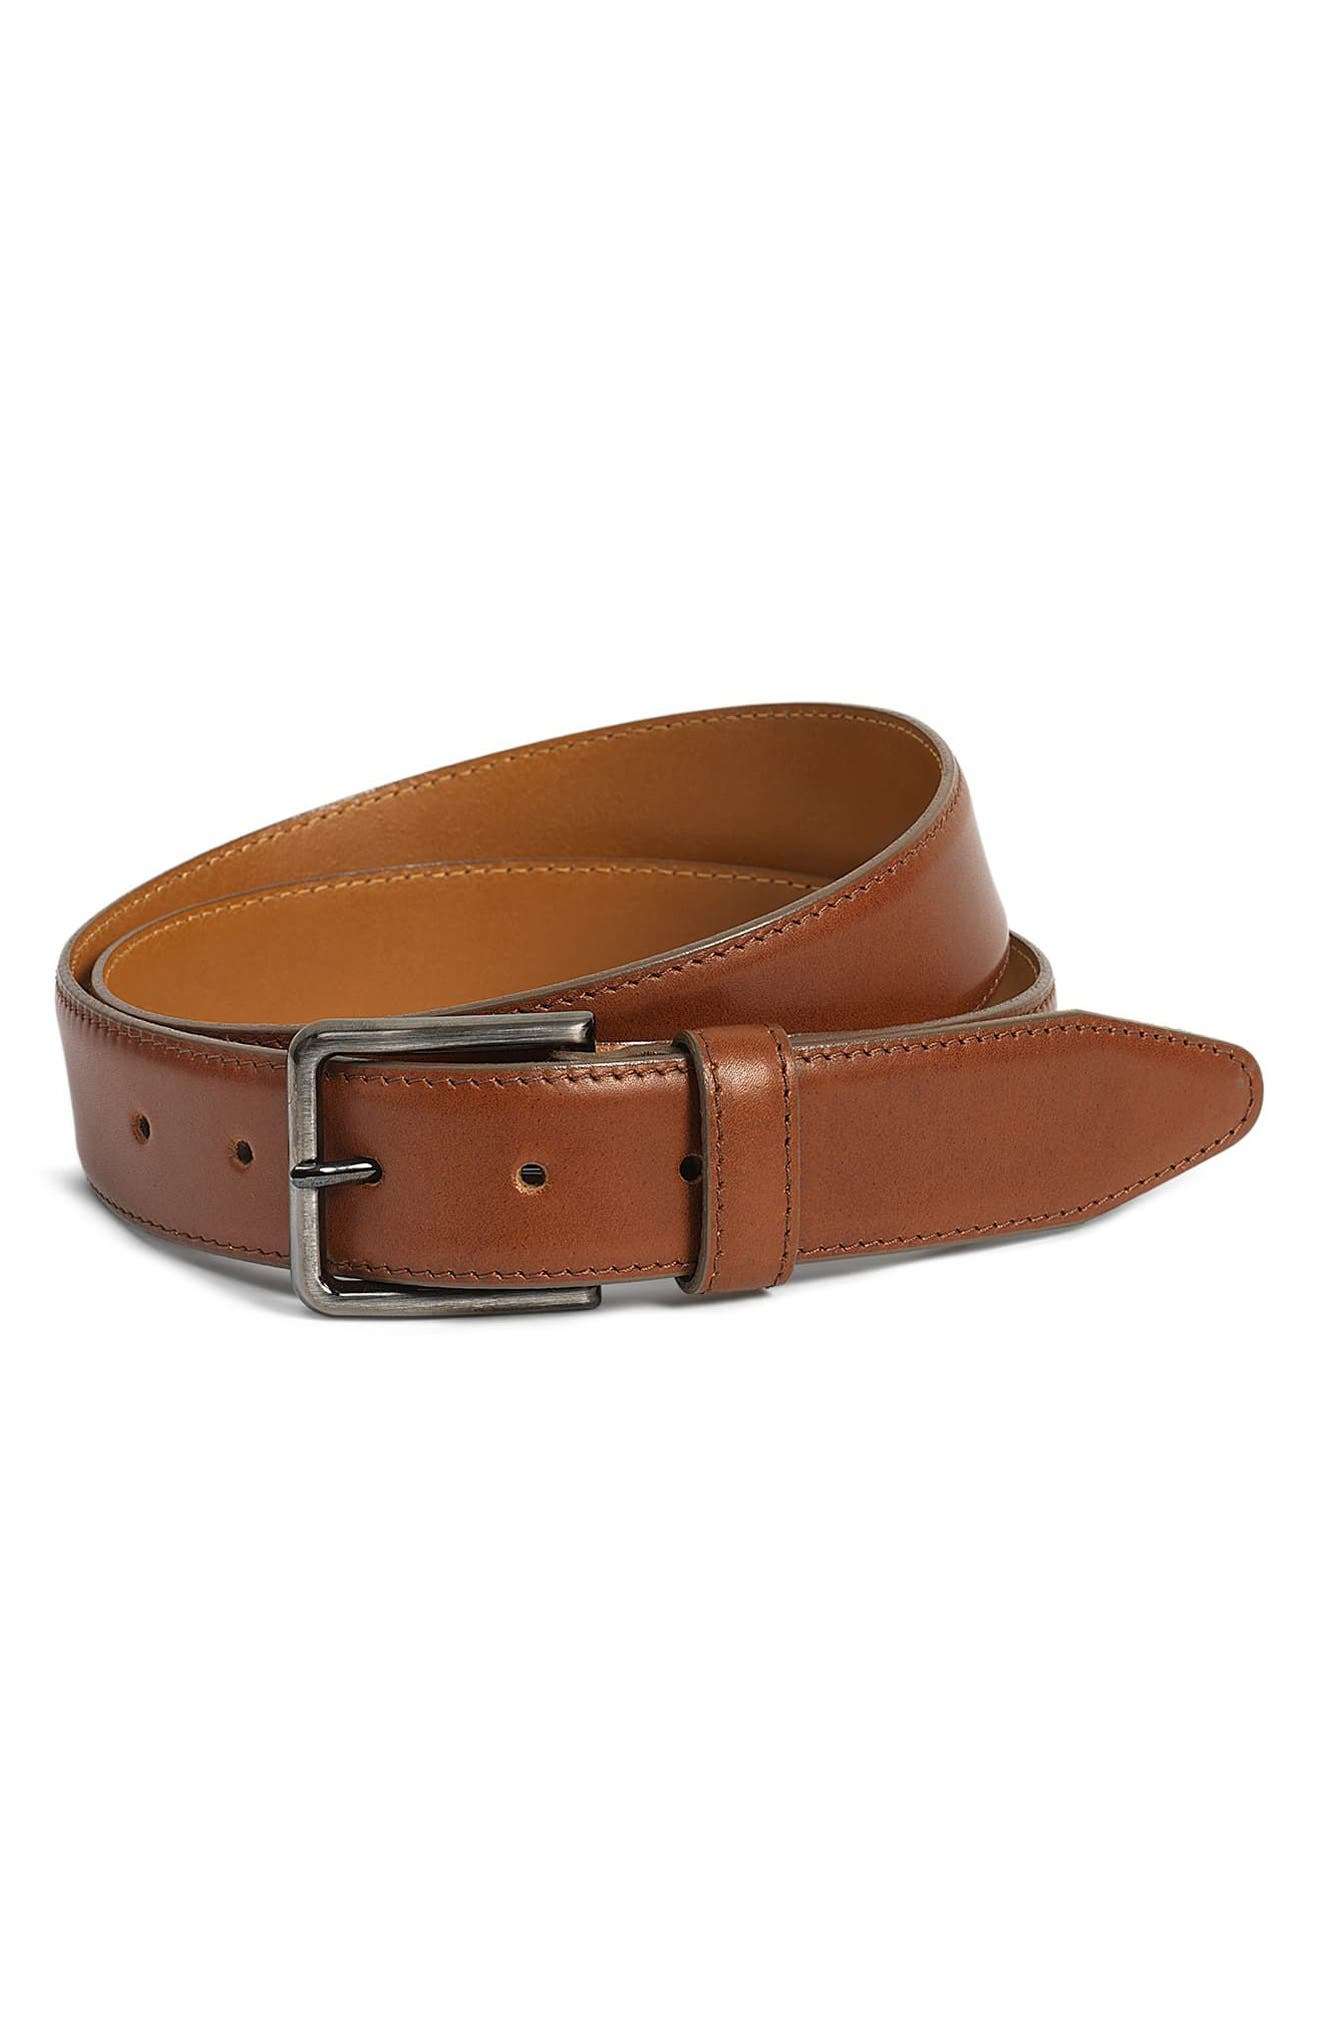 Flint Leather Belt,                         Main,                         color, Tan